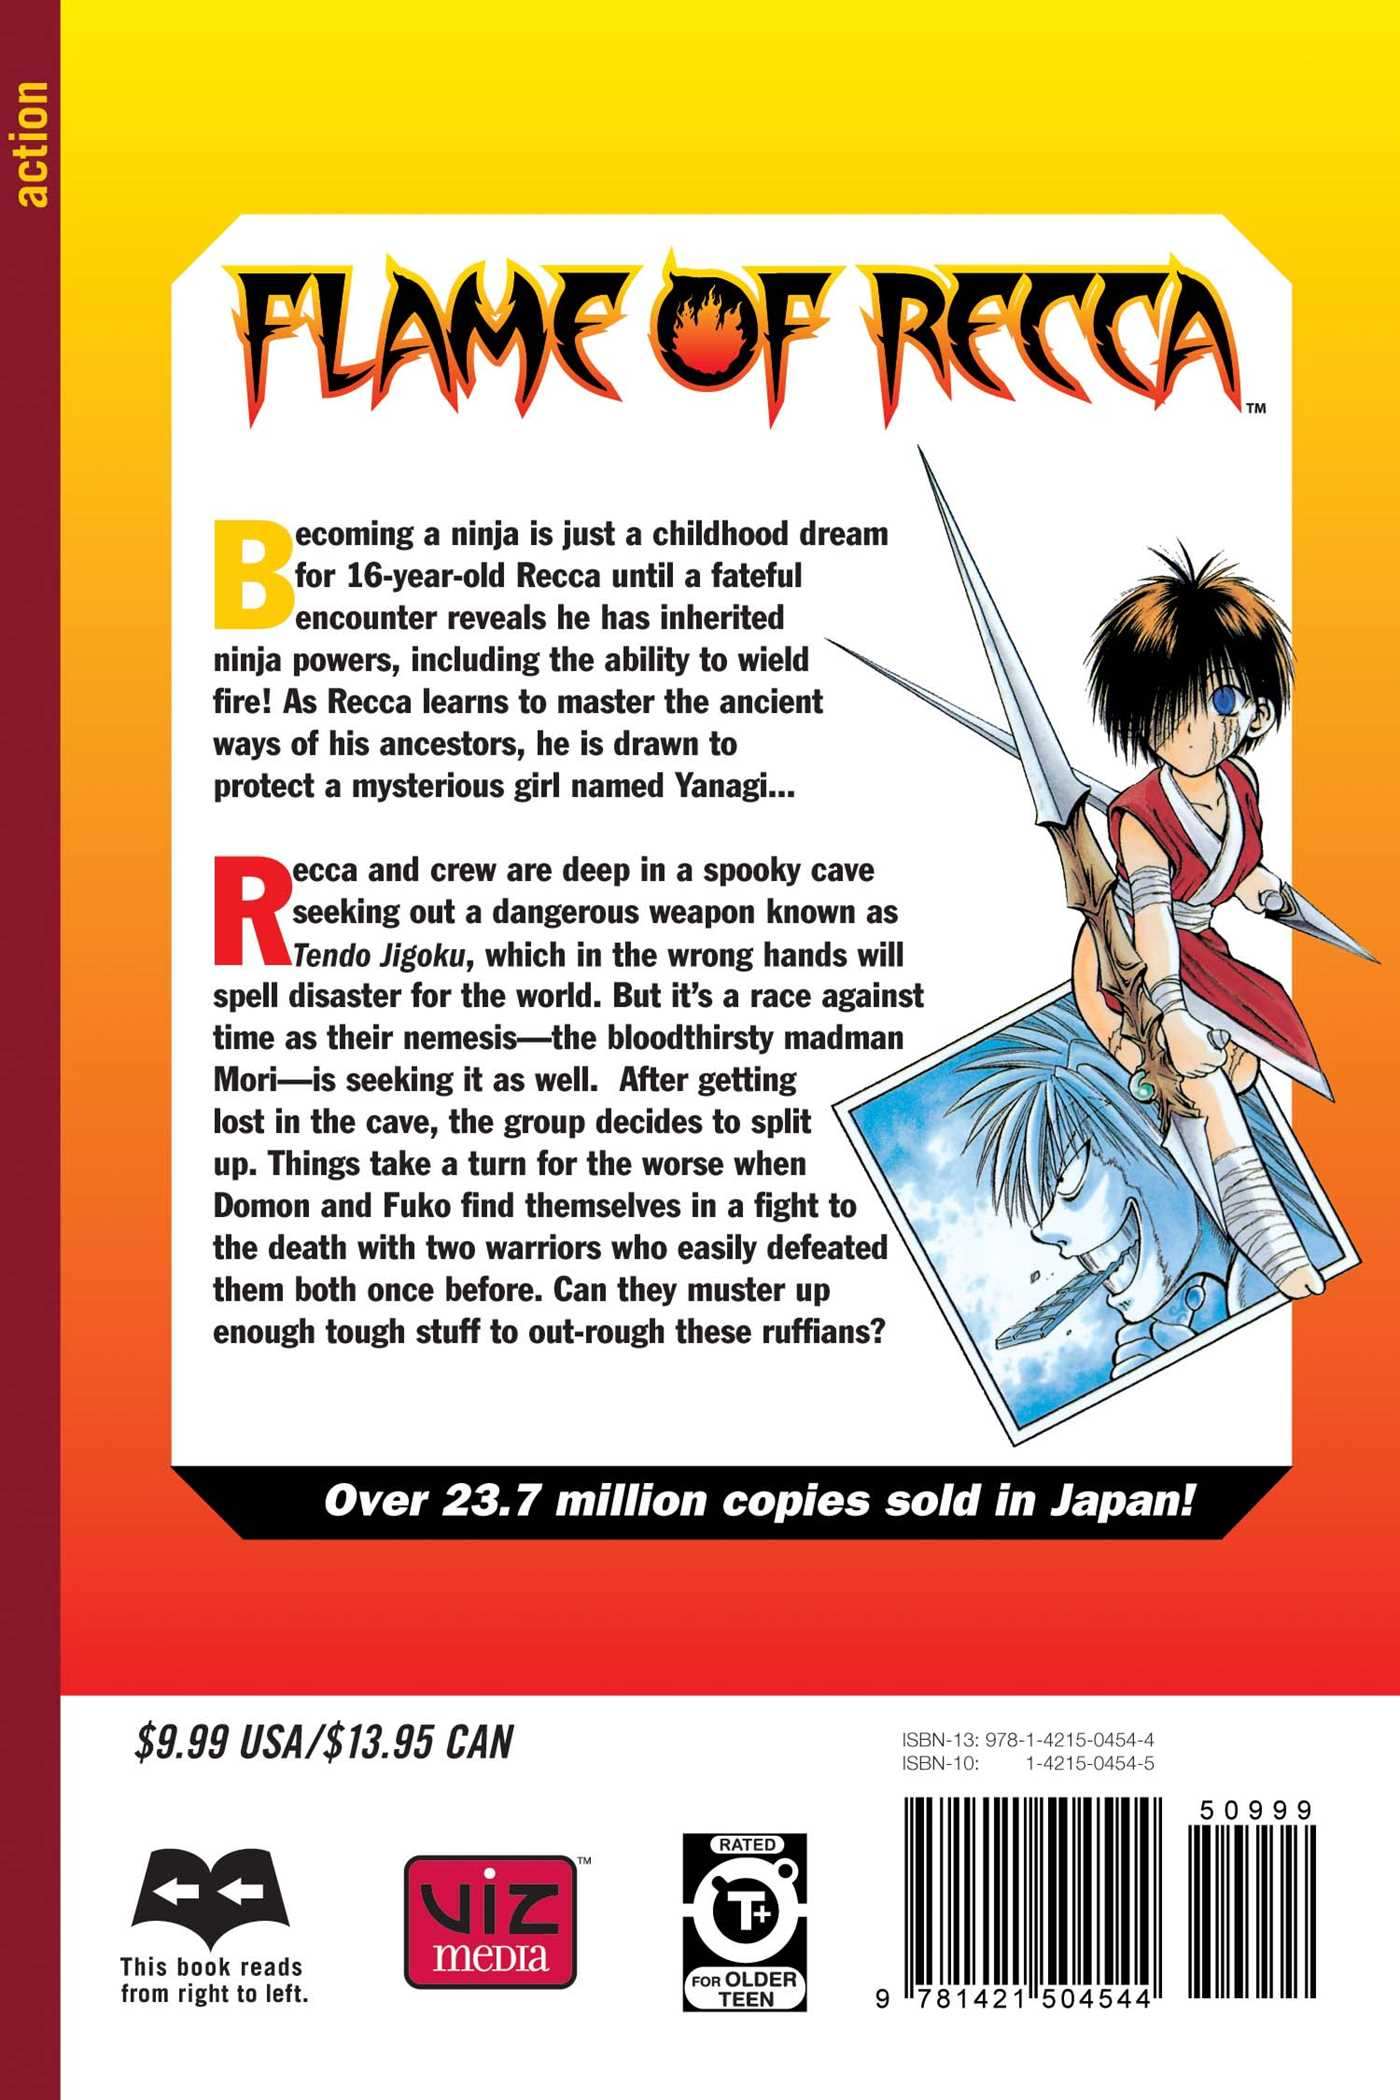 Flame-of-recca-vol-18-9781421504544_hr-back